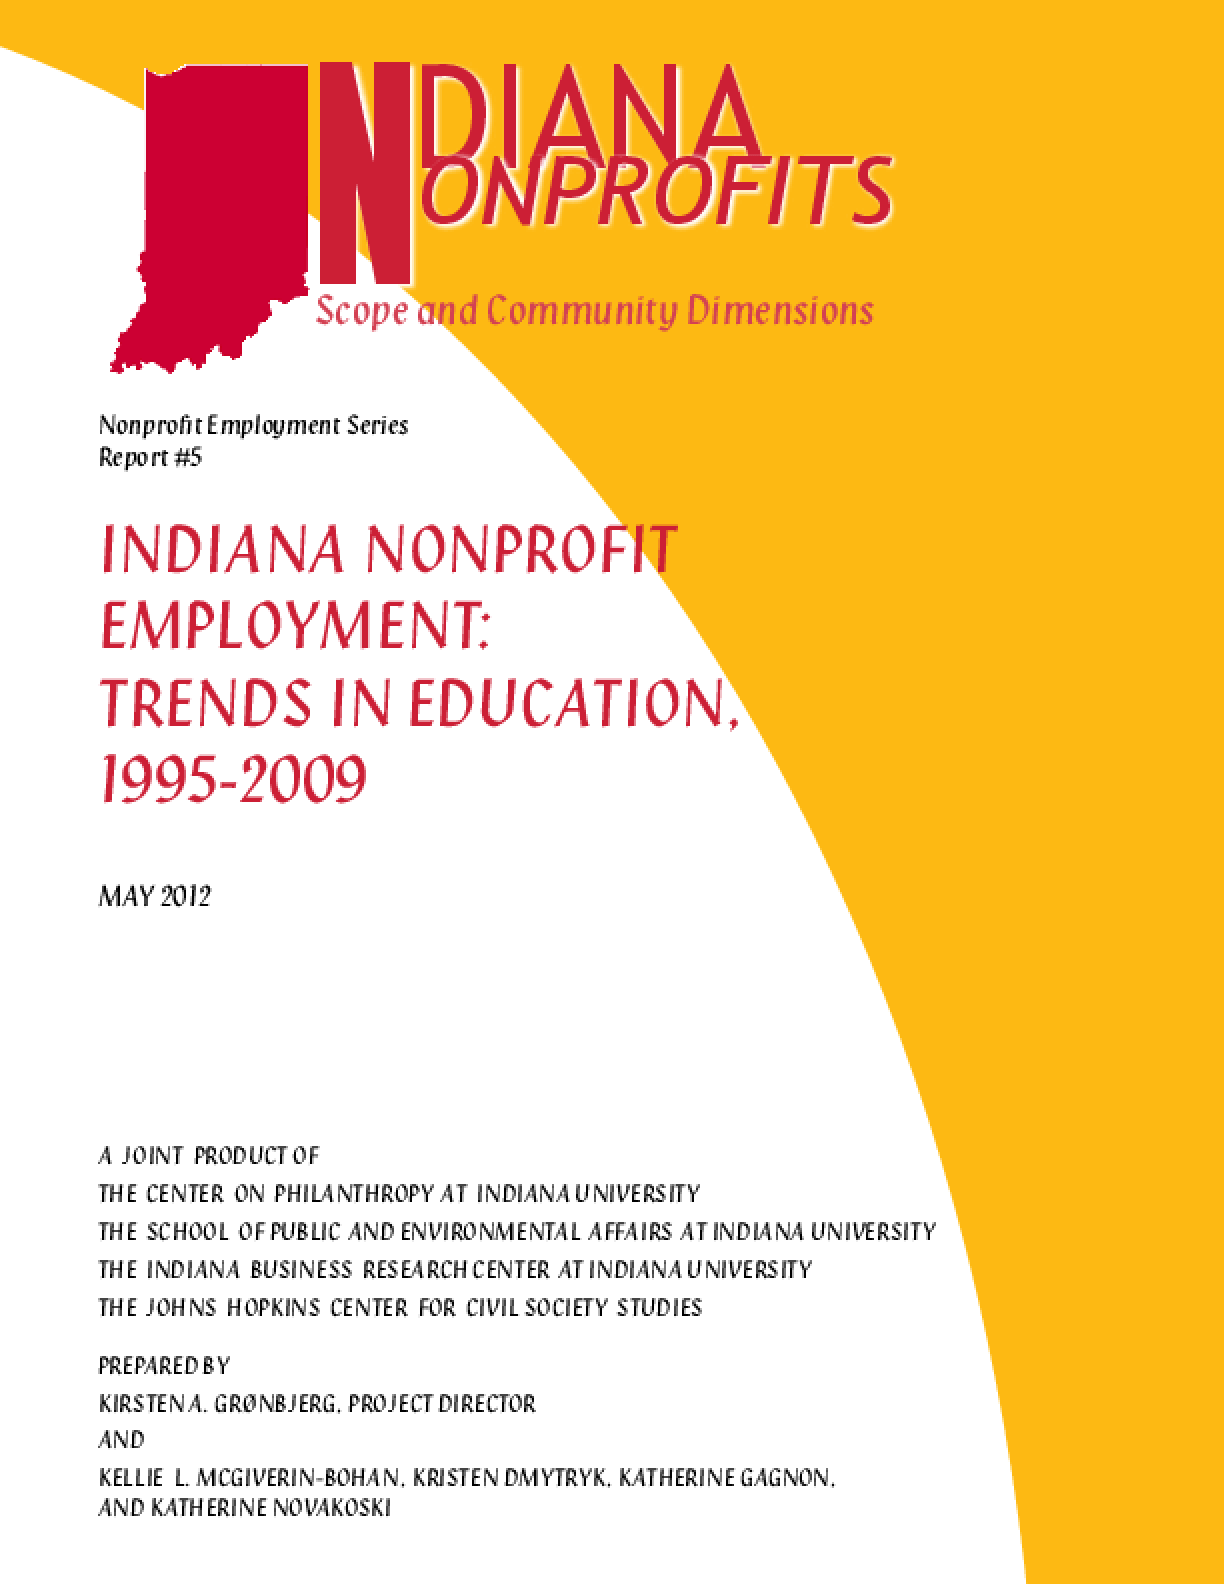 Indiana Nonprofit Employment: Trends in Education, 1995-2009